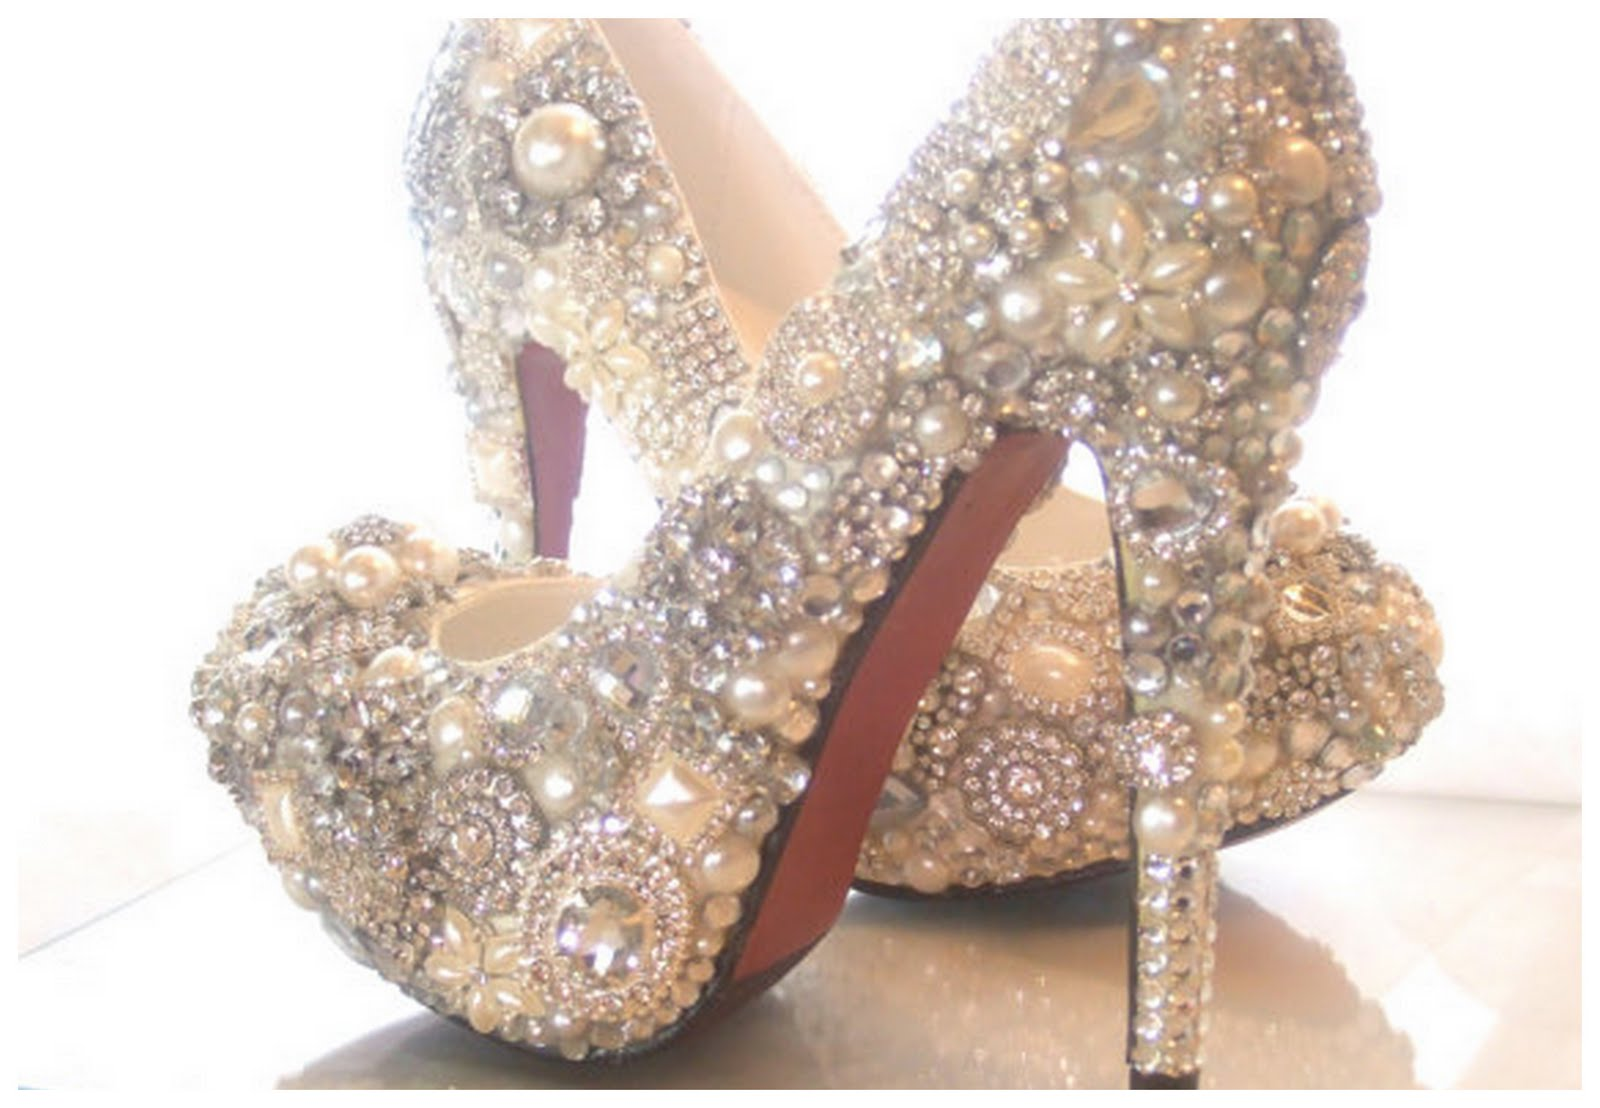 to see more wedding shoe ideas or how about real weddings